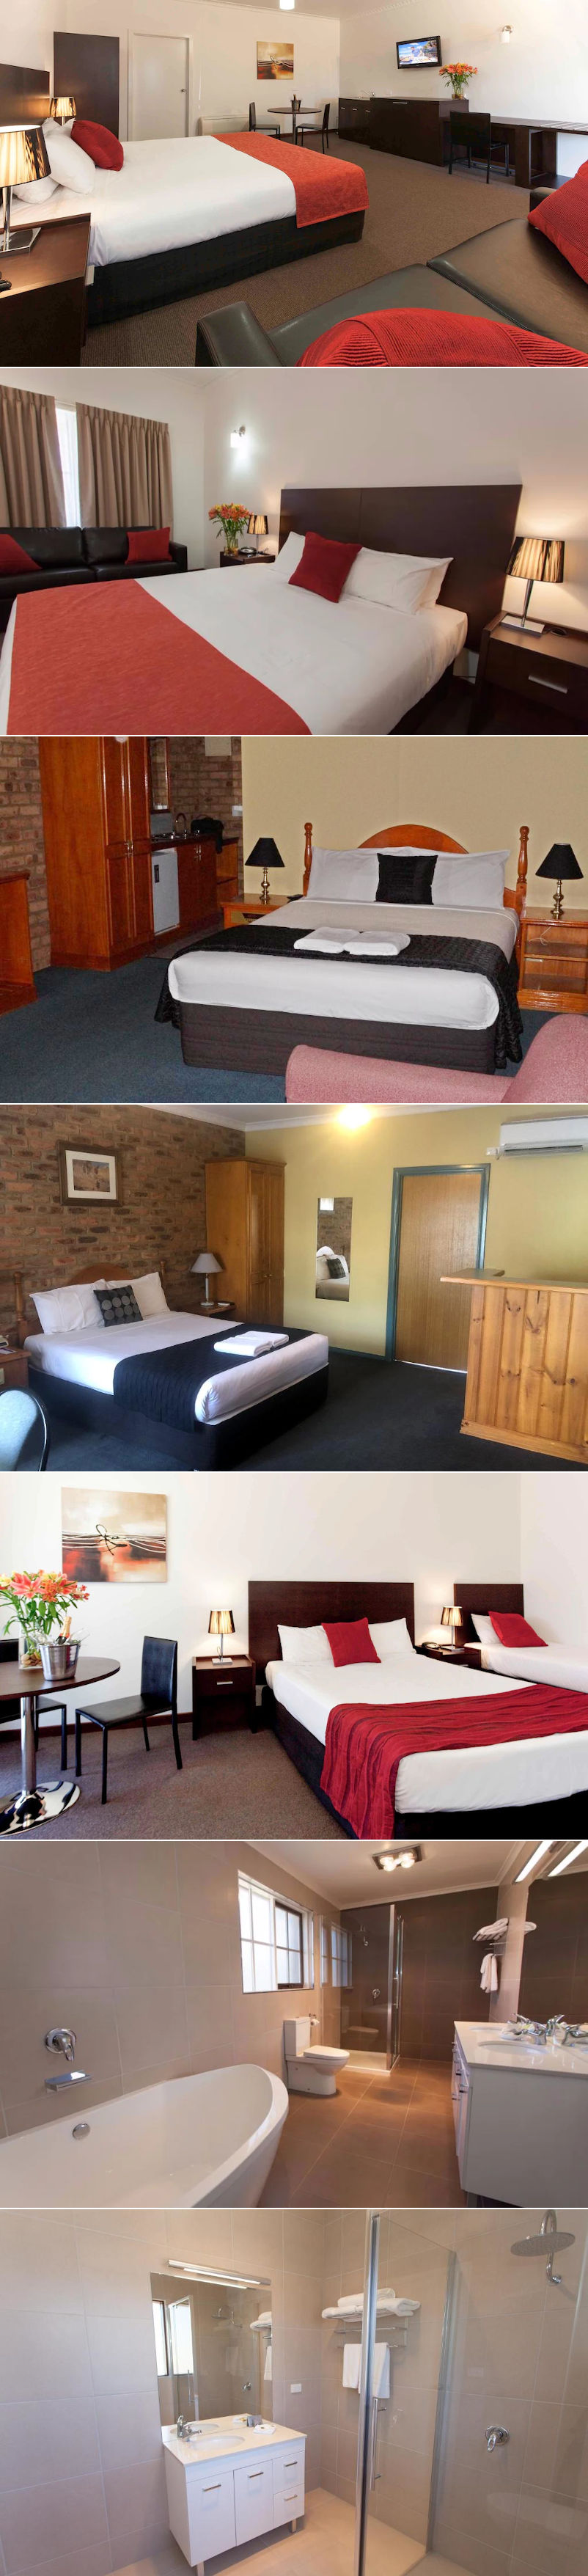 Mercure Port of Echuca Hotel - Rooms